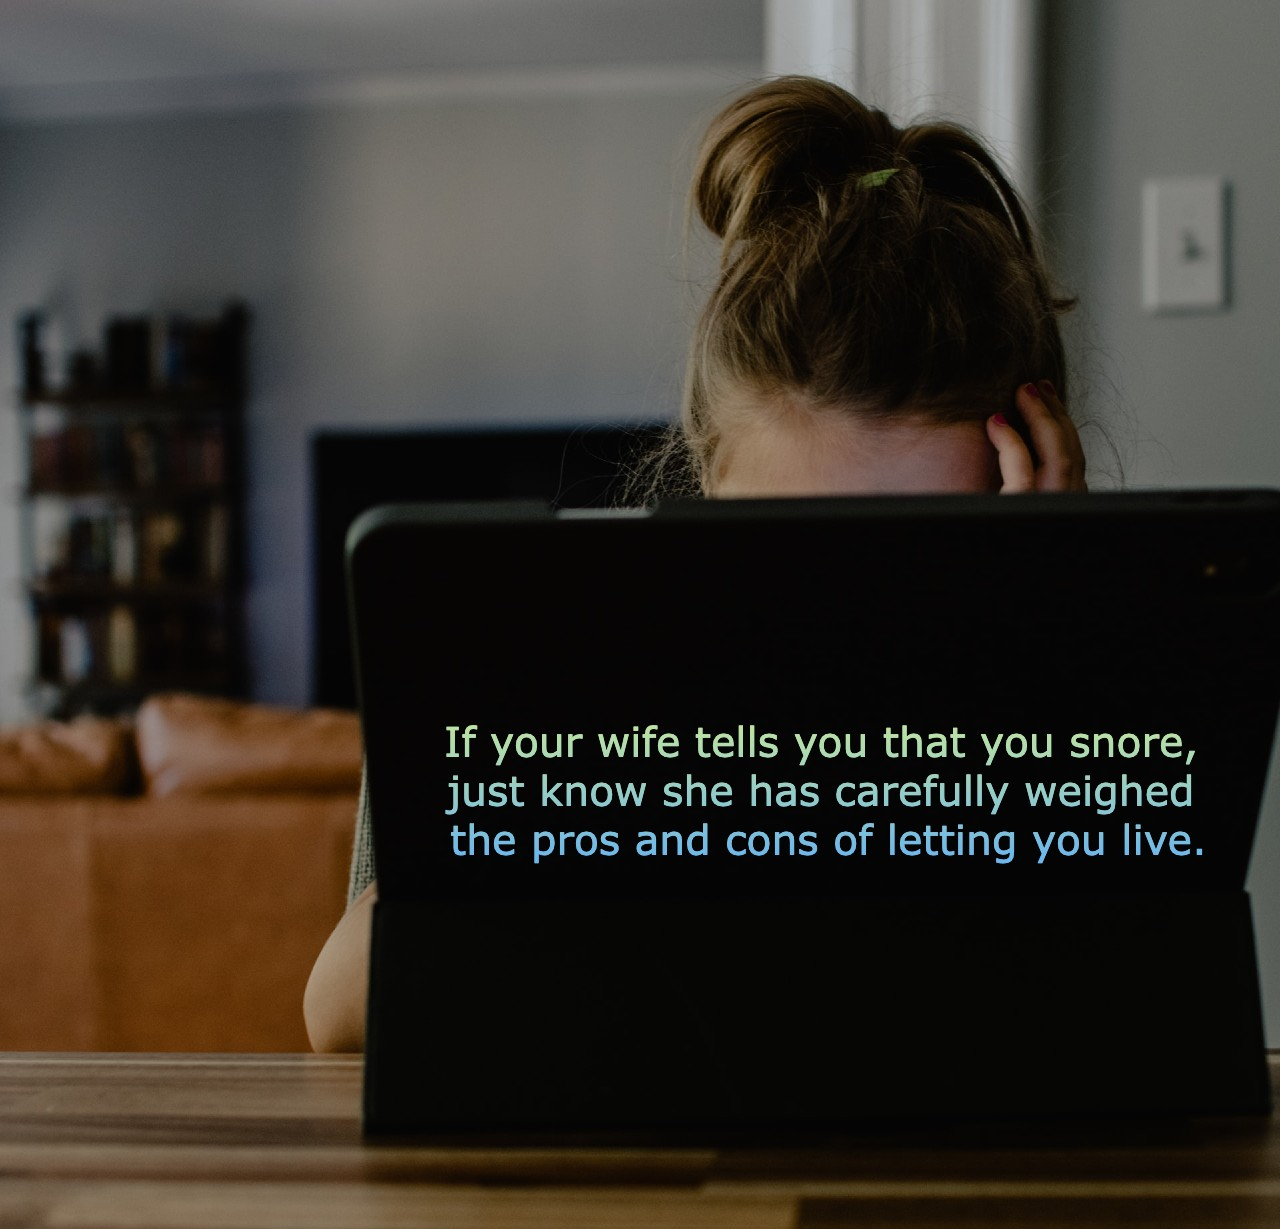 If your wife tells you that you snore, just know she has carefully weighed the pros and cons of letting you live.